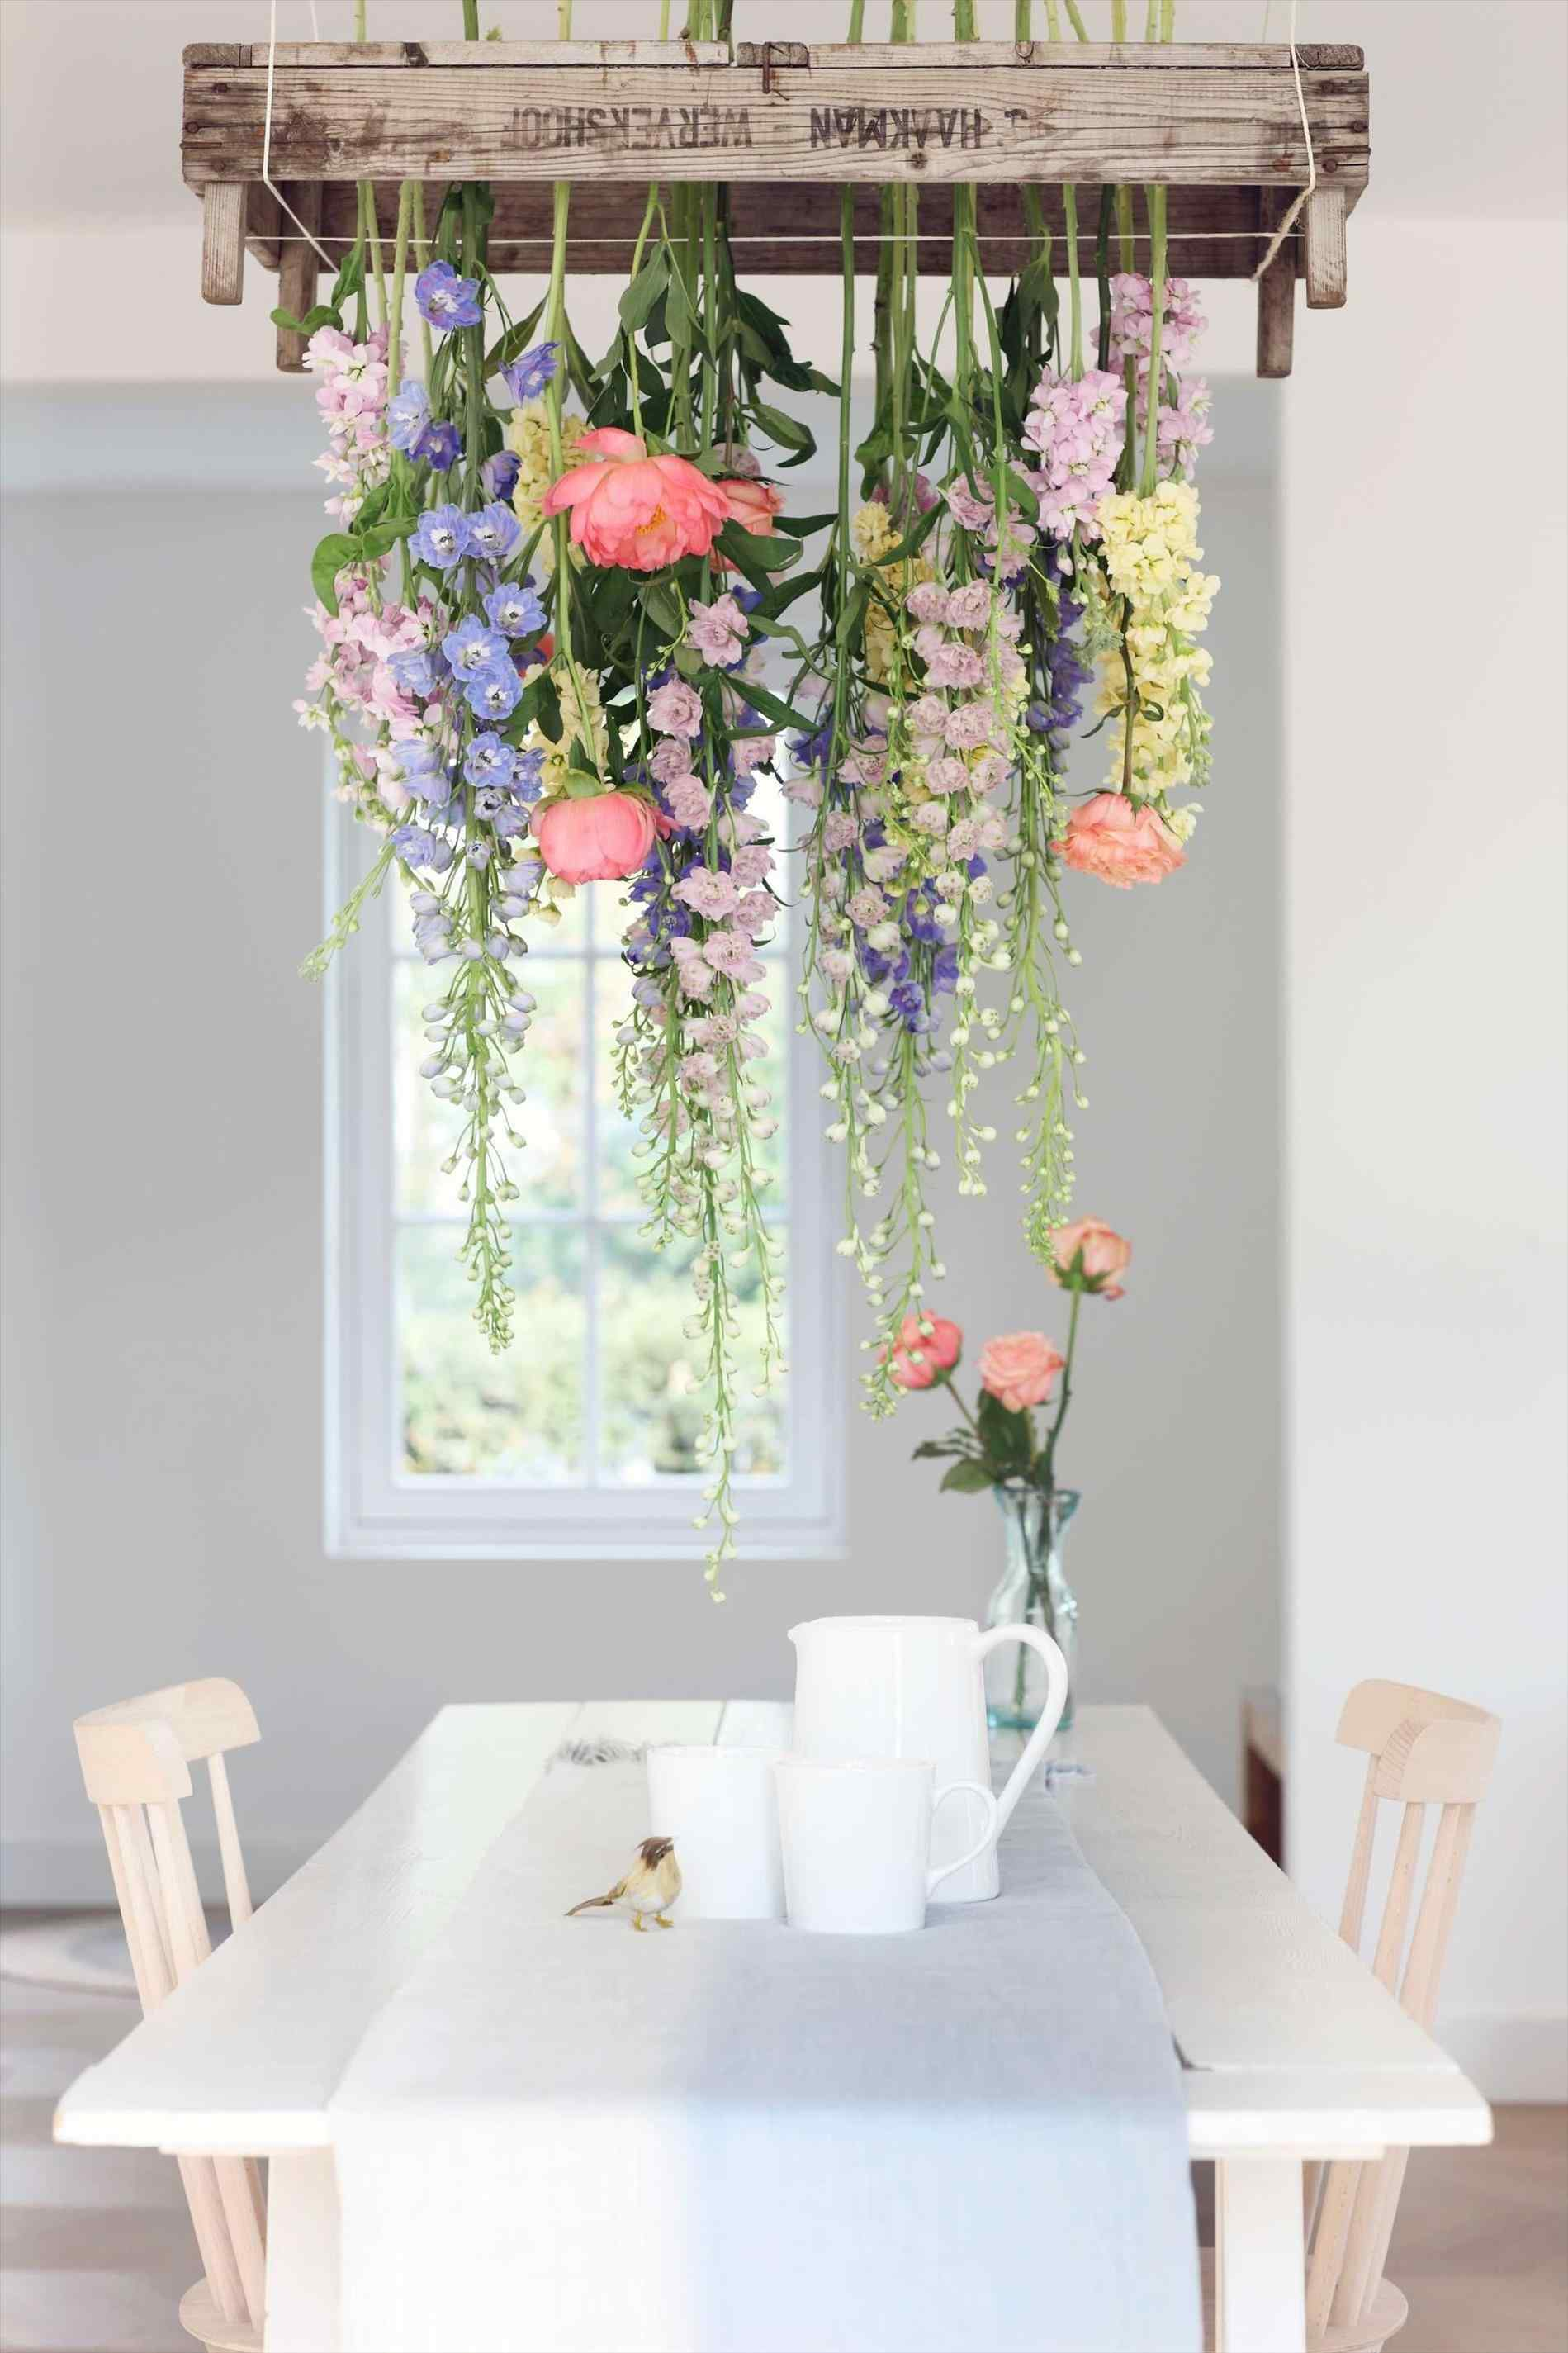 Como decorar con flores artificiales